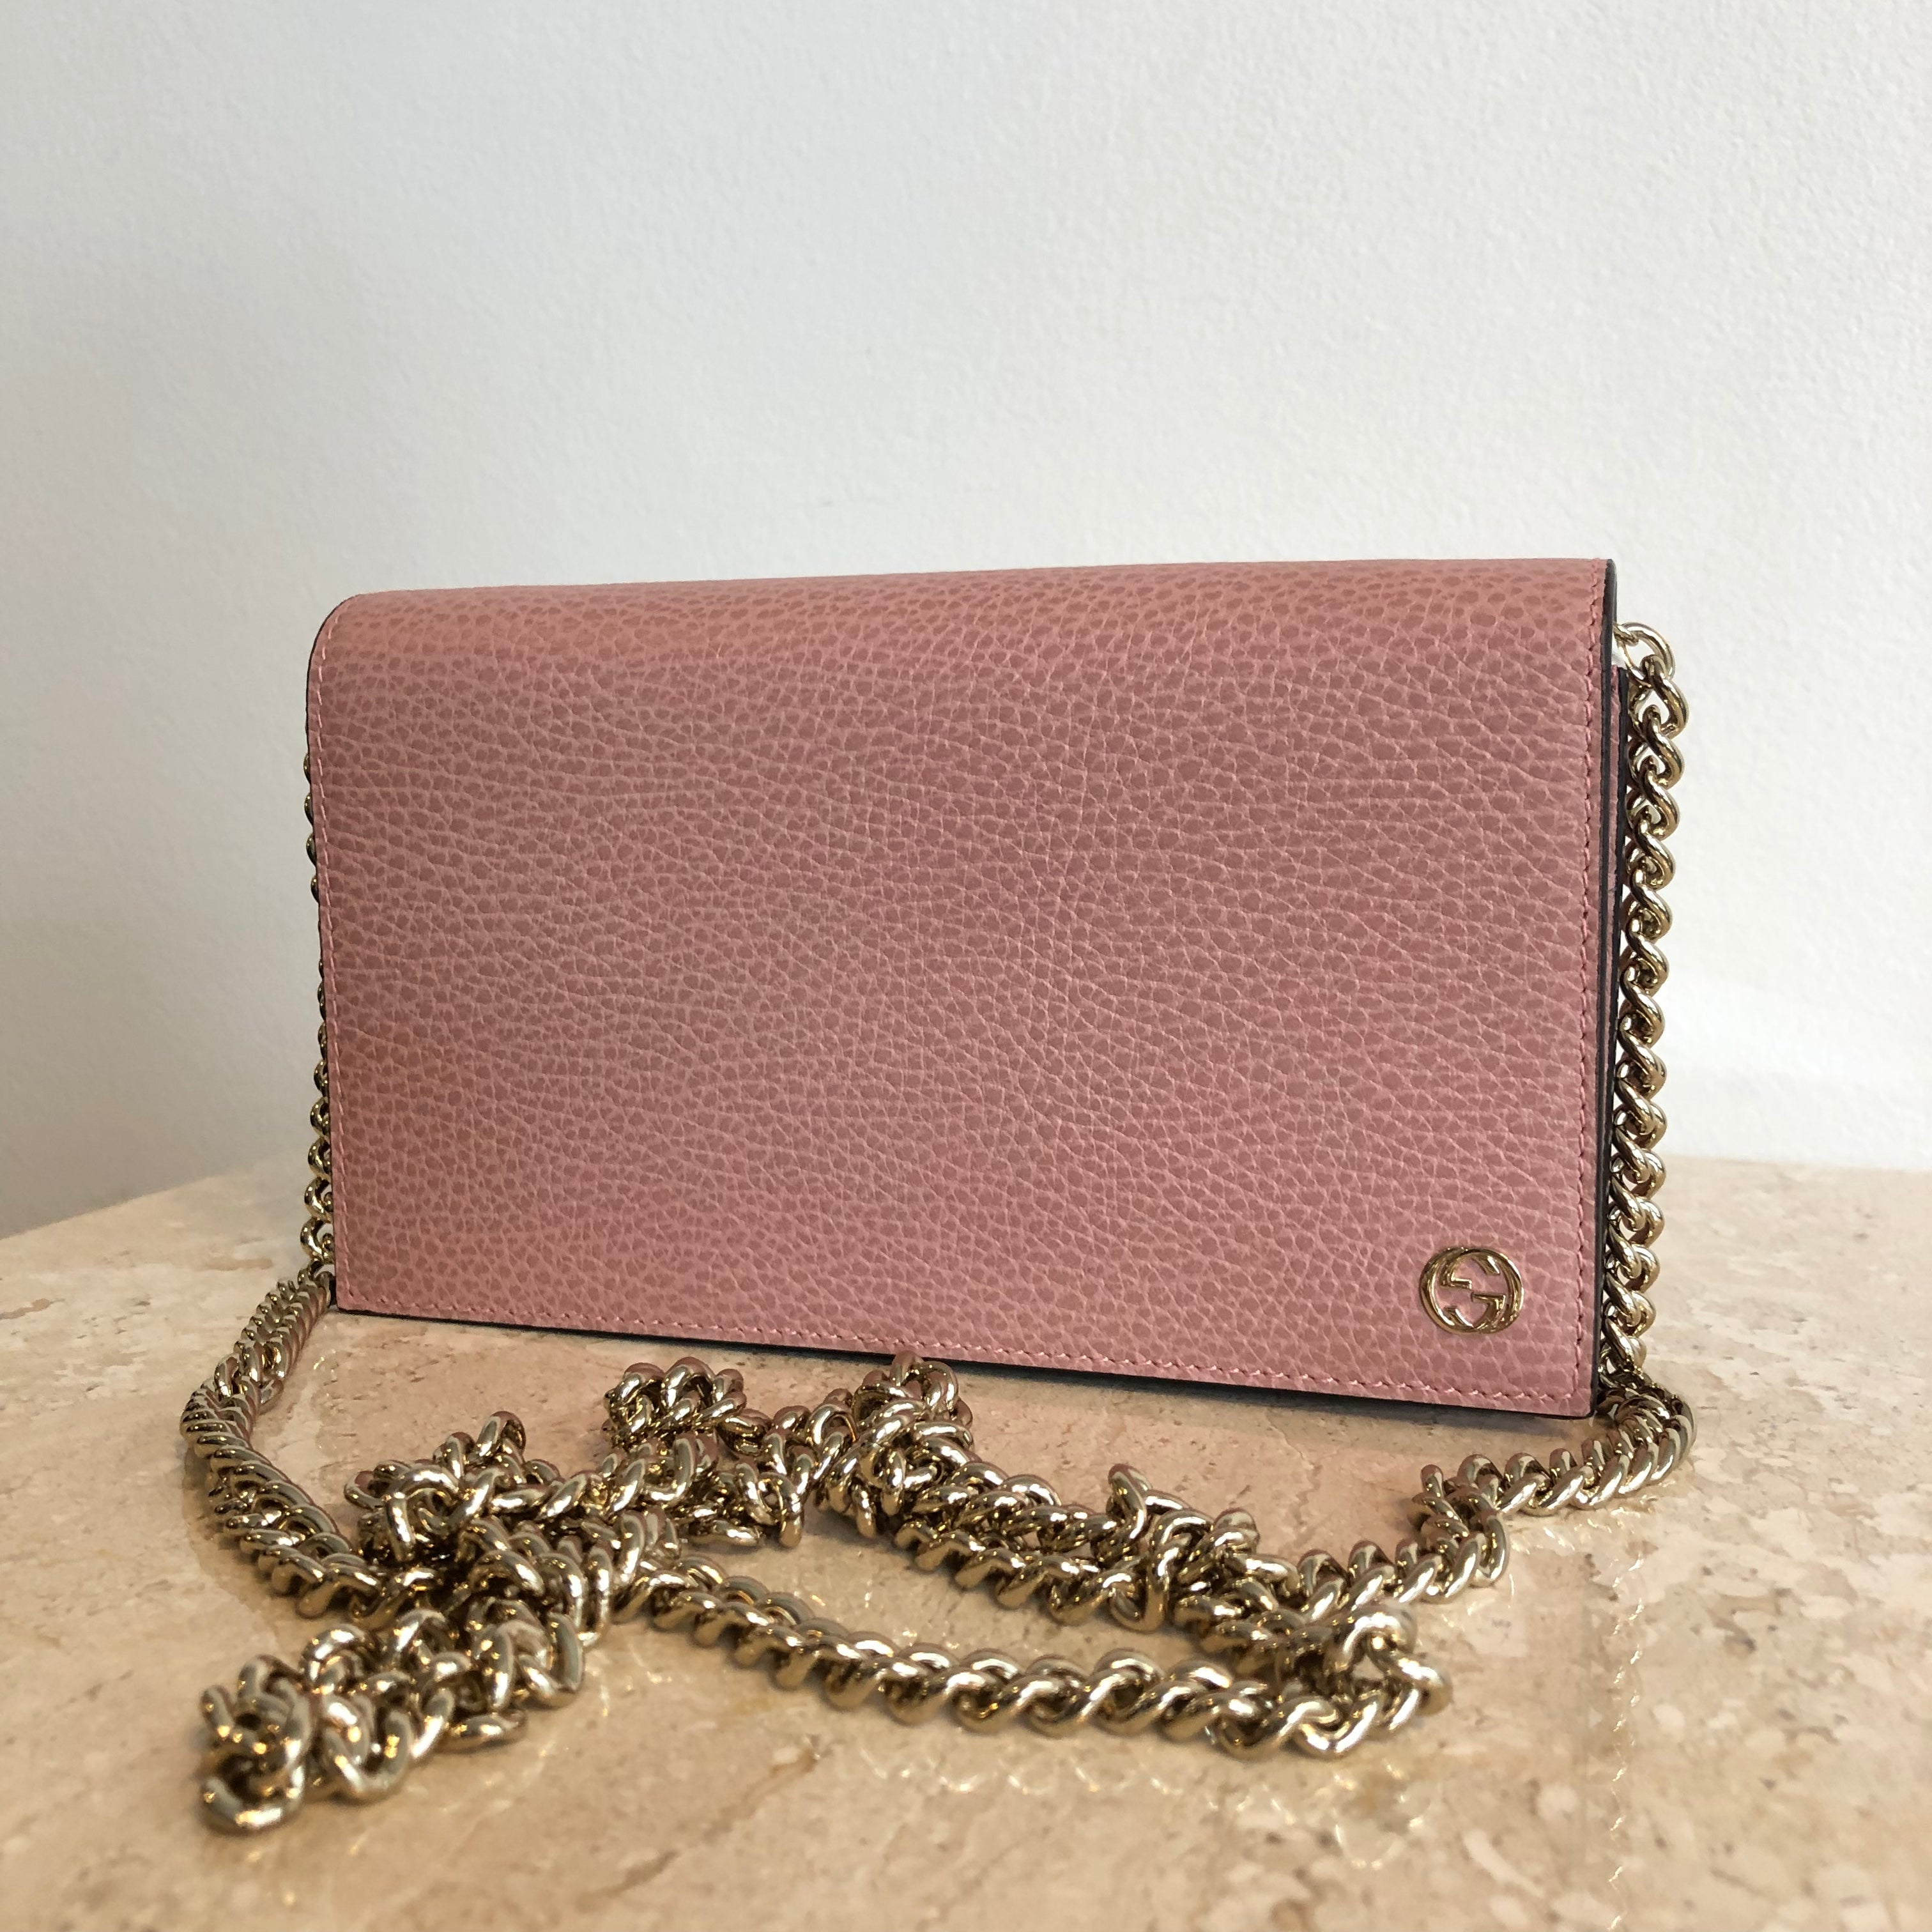 Authentic GUCCI Wallet on Chain